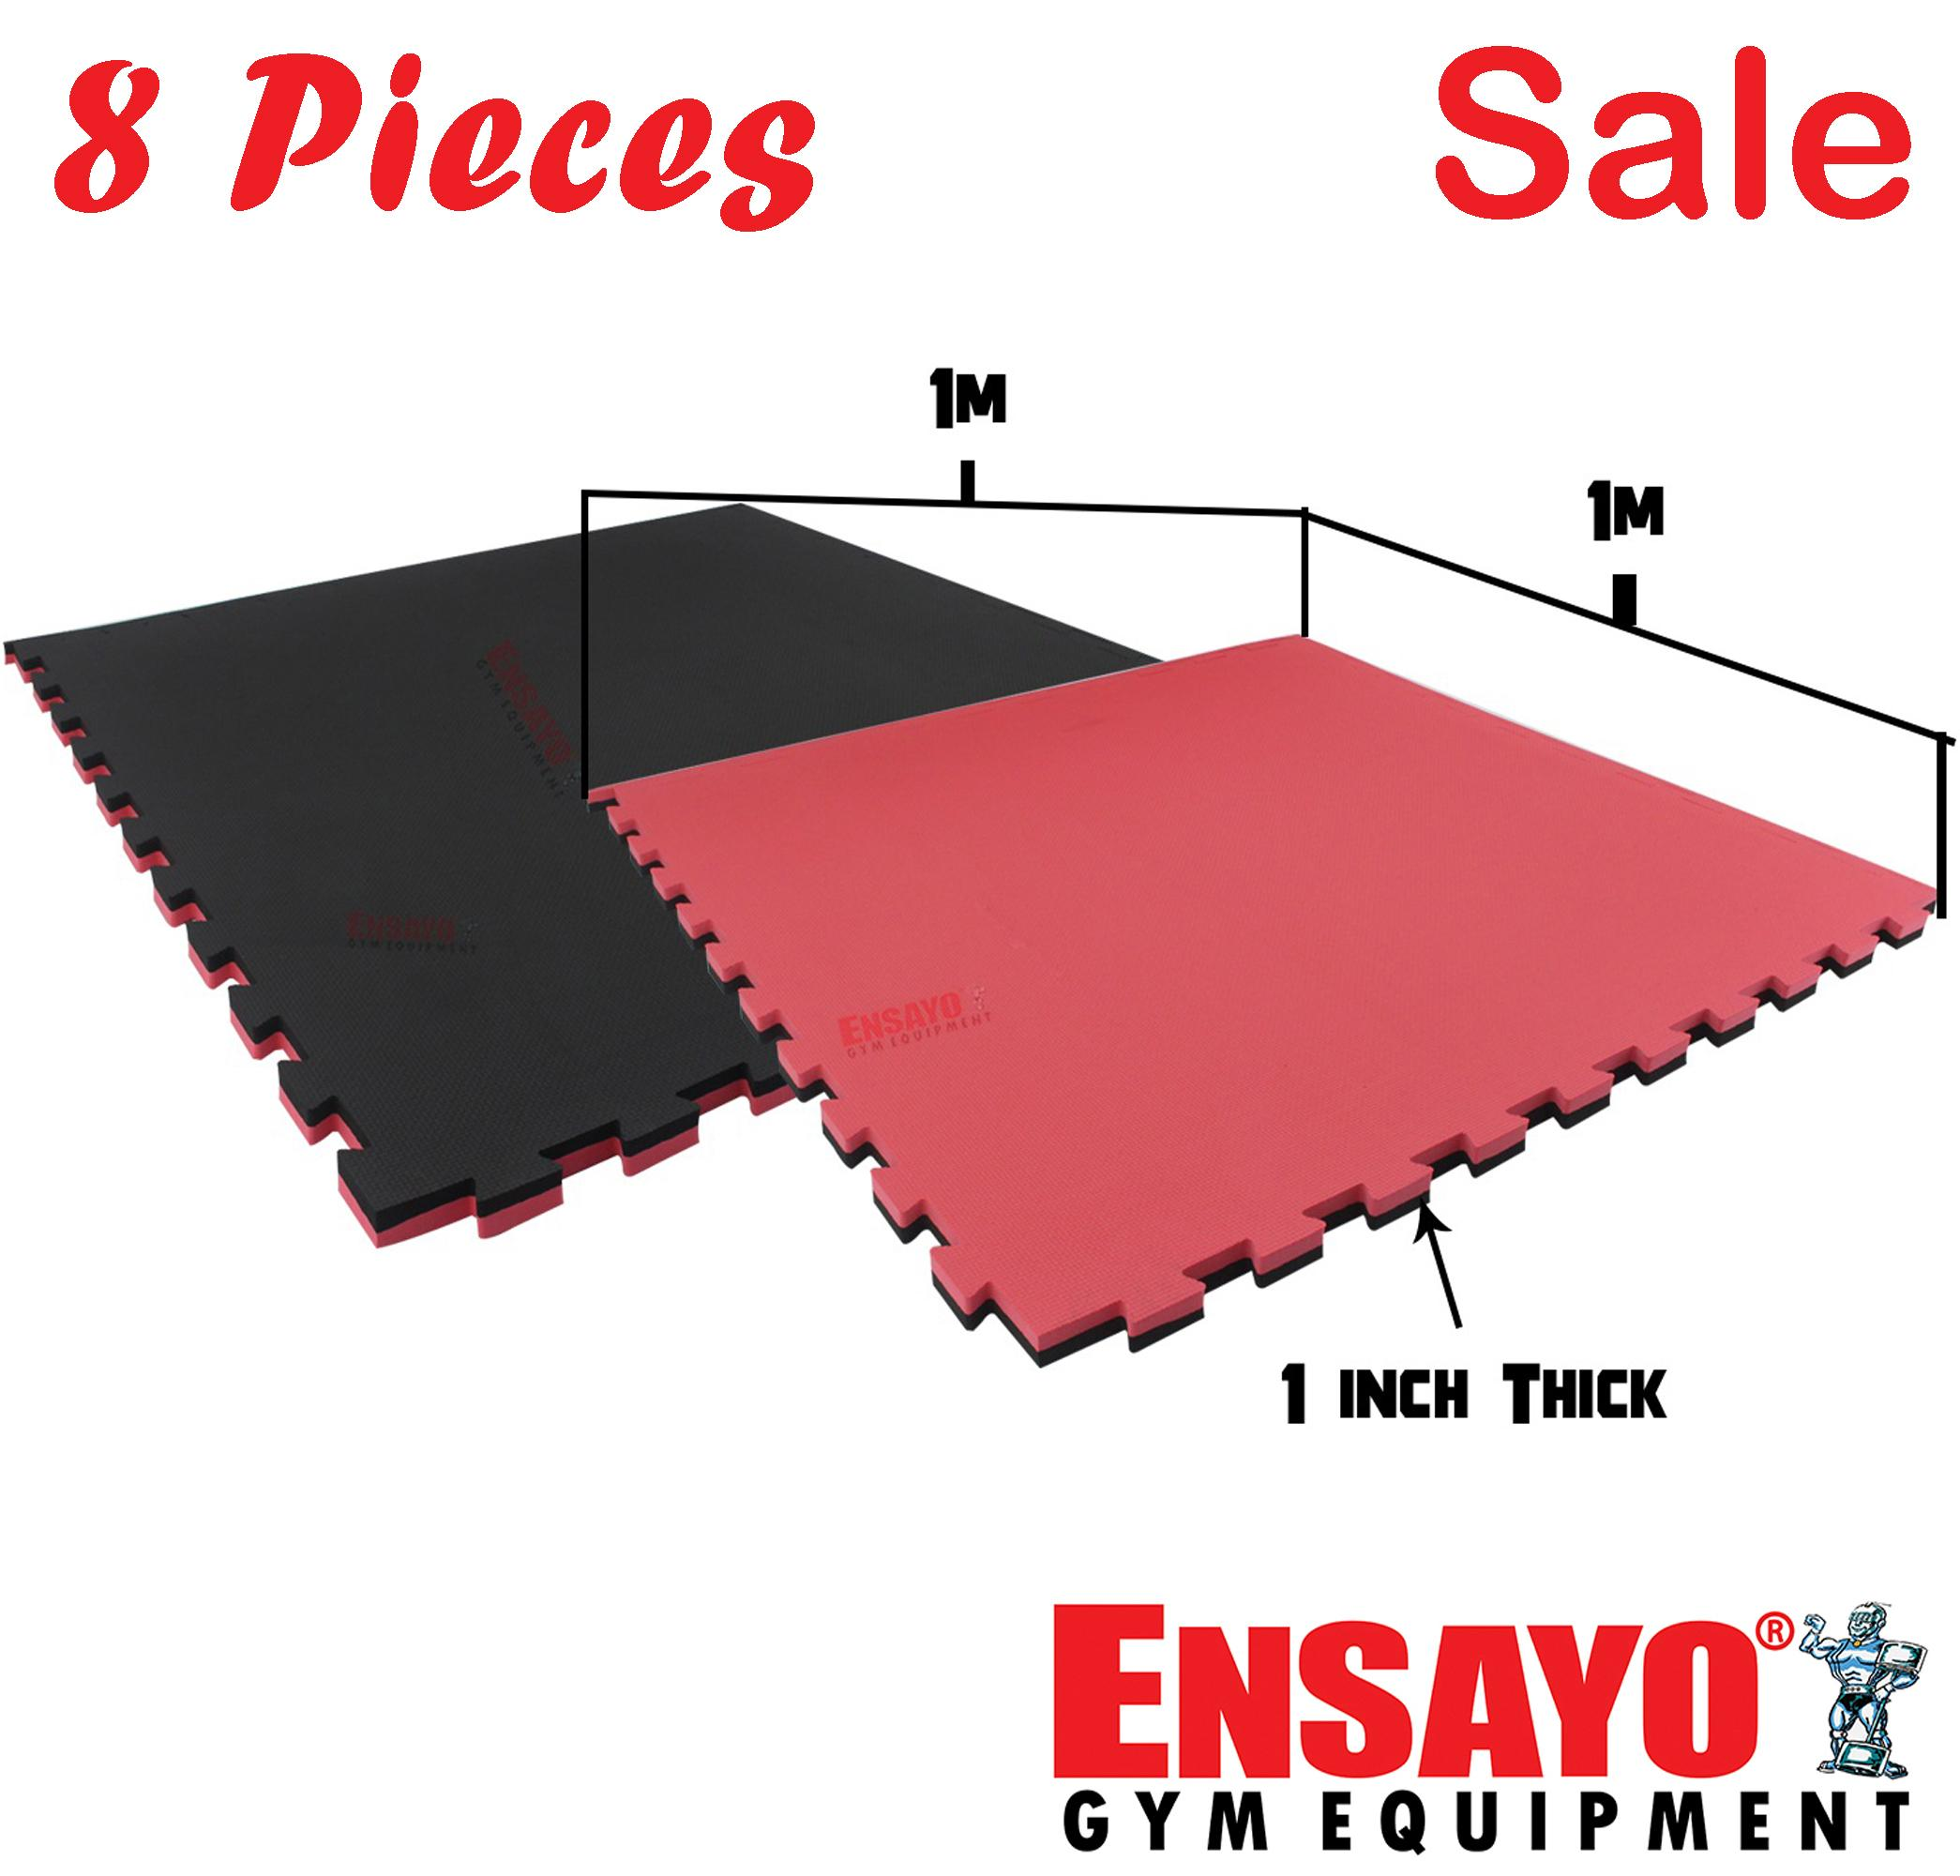 ENSAYO 8pcs  Low Density Mats Black/Red 1x1 meter x 1-inch Best  Home/Commercial gym (  Exercise/Workout/Judo/Gymnastics/Jiu-jitsu/Yoga/Grappling/Streng